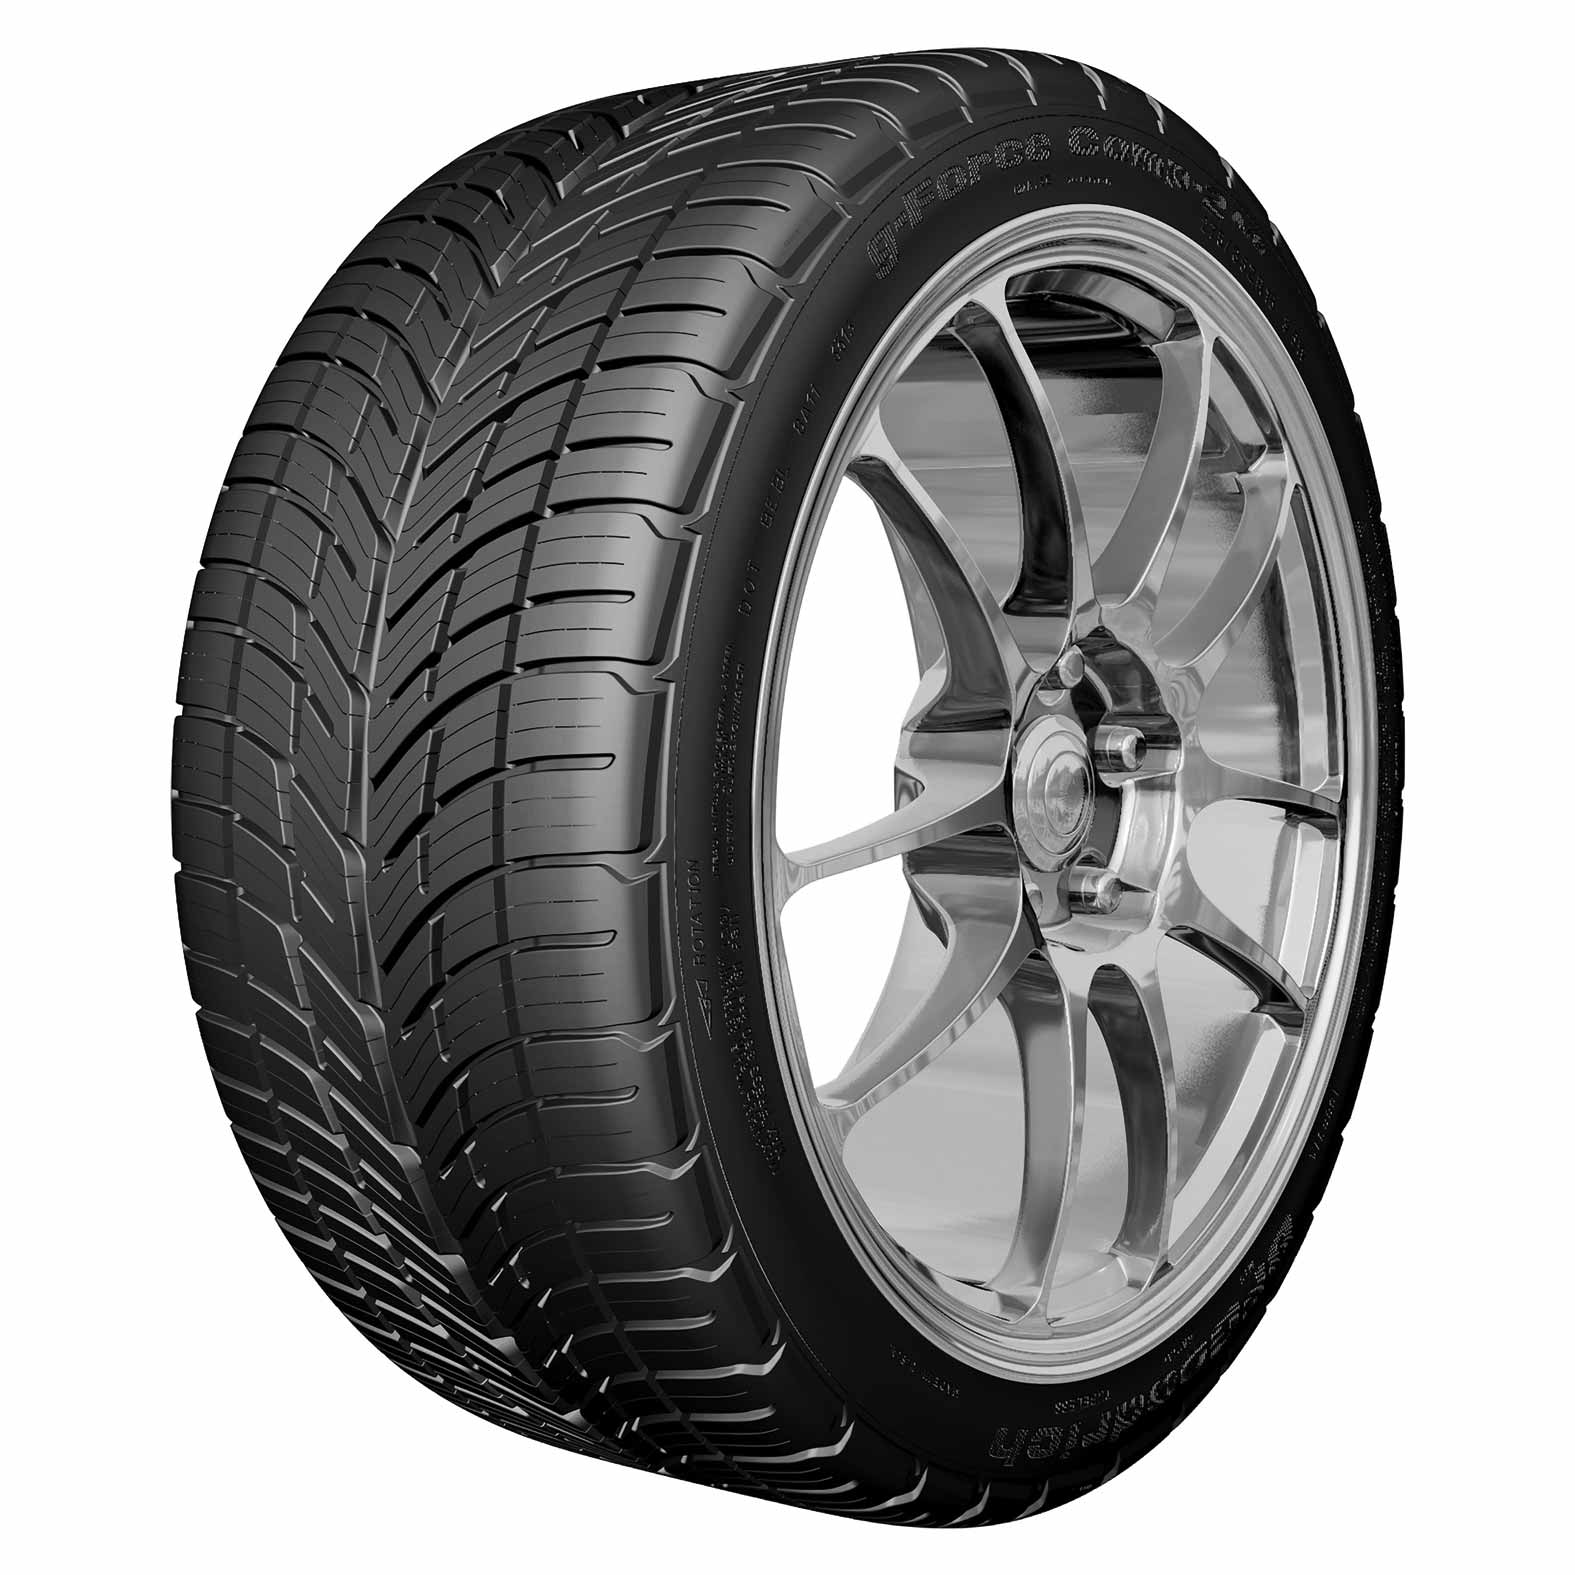 BFGoodrich G-Force Comp 2 AS tire - angle